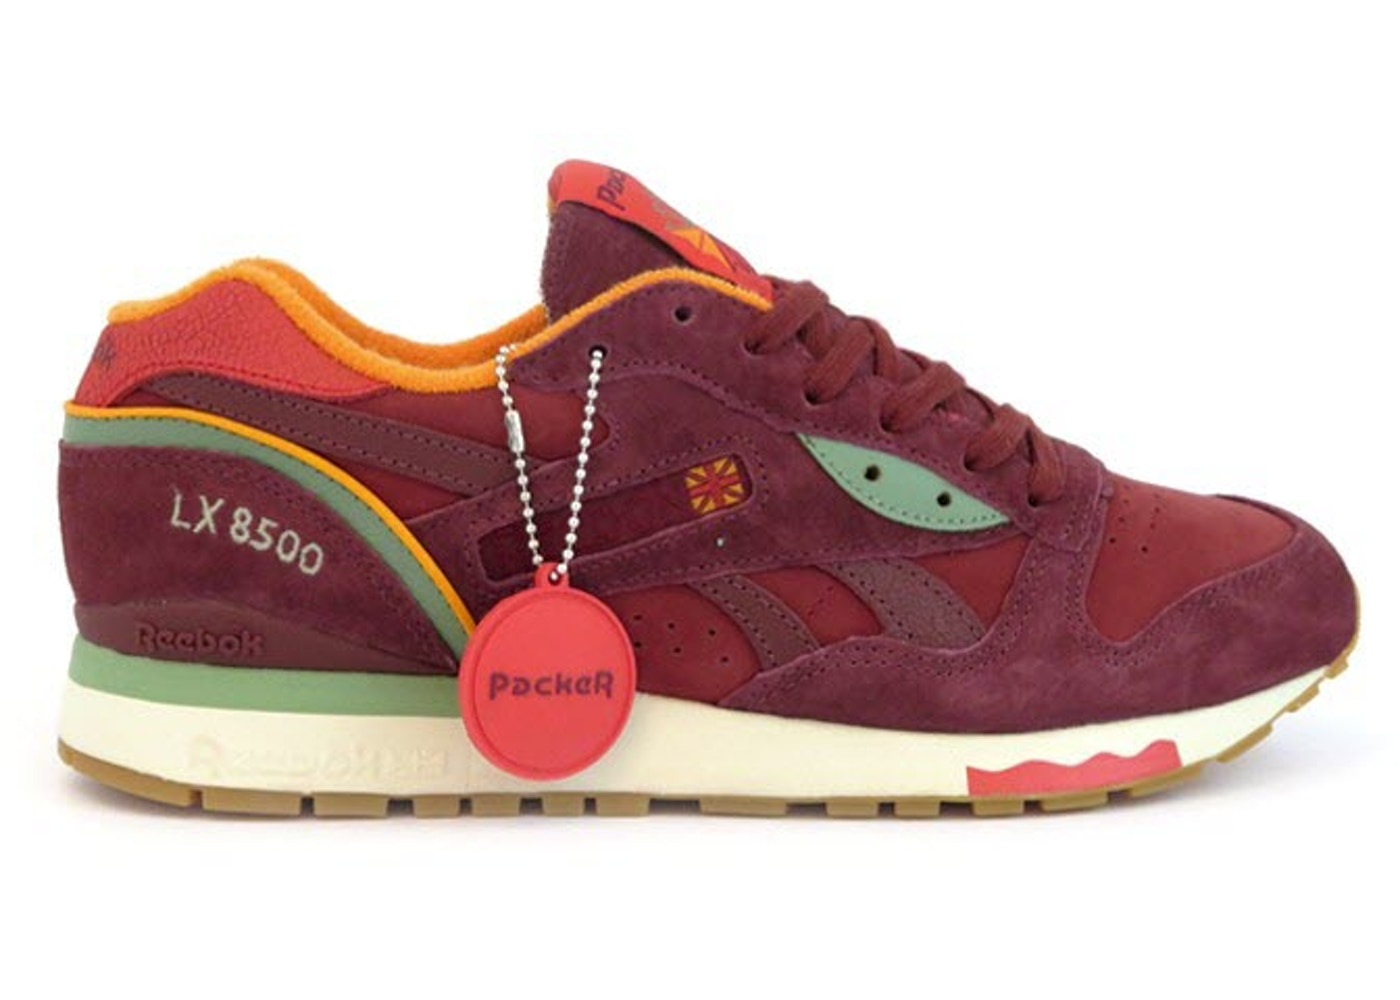 Romance Santuario Sedante  Reebok LX 8500 Packer Shoes Four Seasons Autumn - M47405